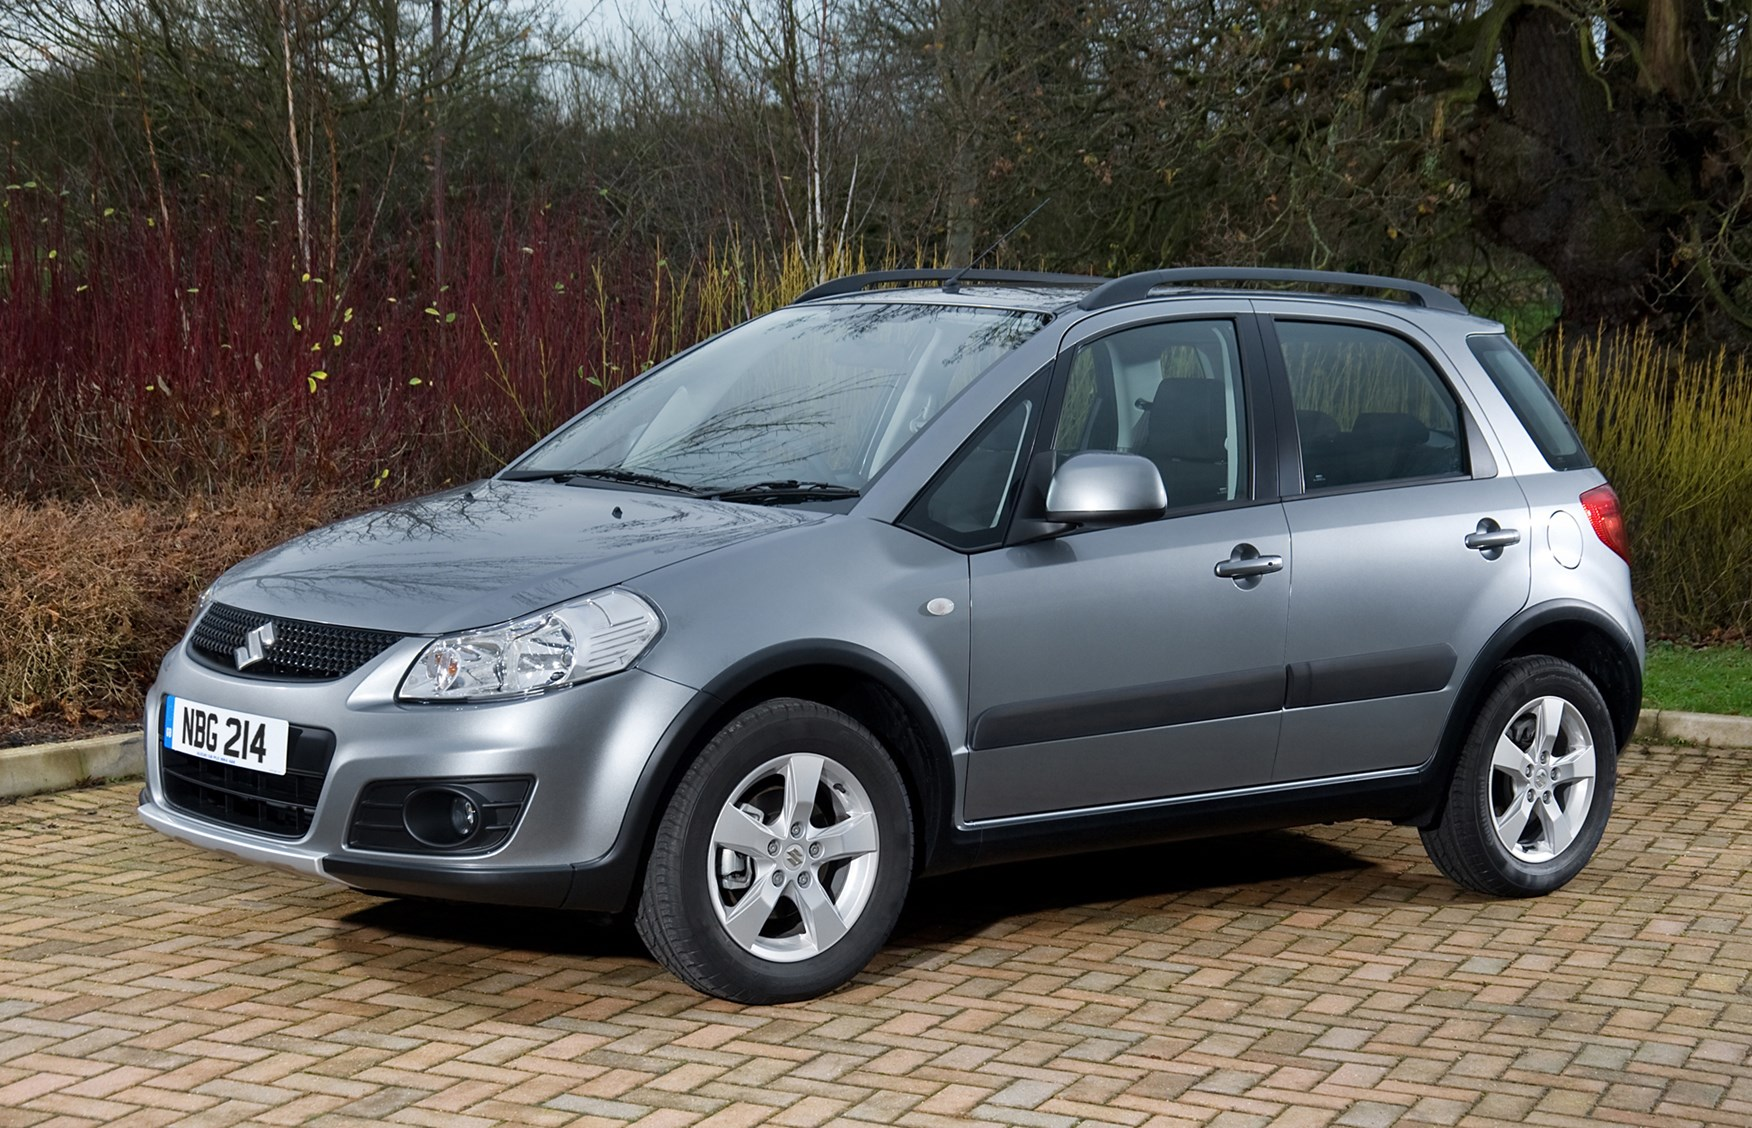 Used Suzuki SX4 Hatchback (2006 - 2014) Review | Parkers